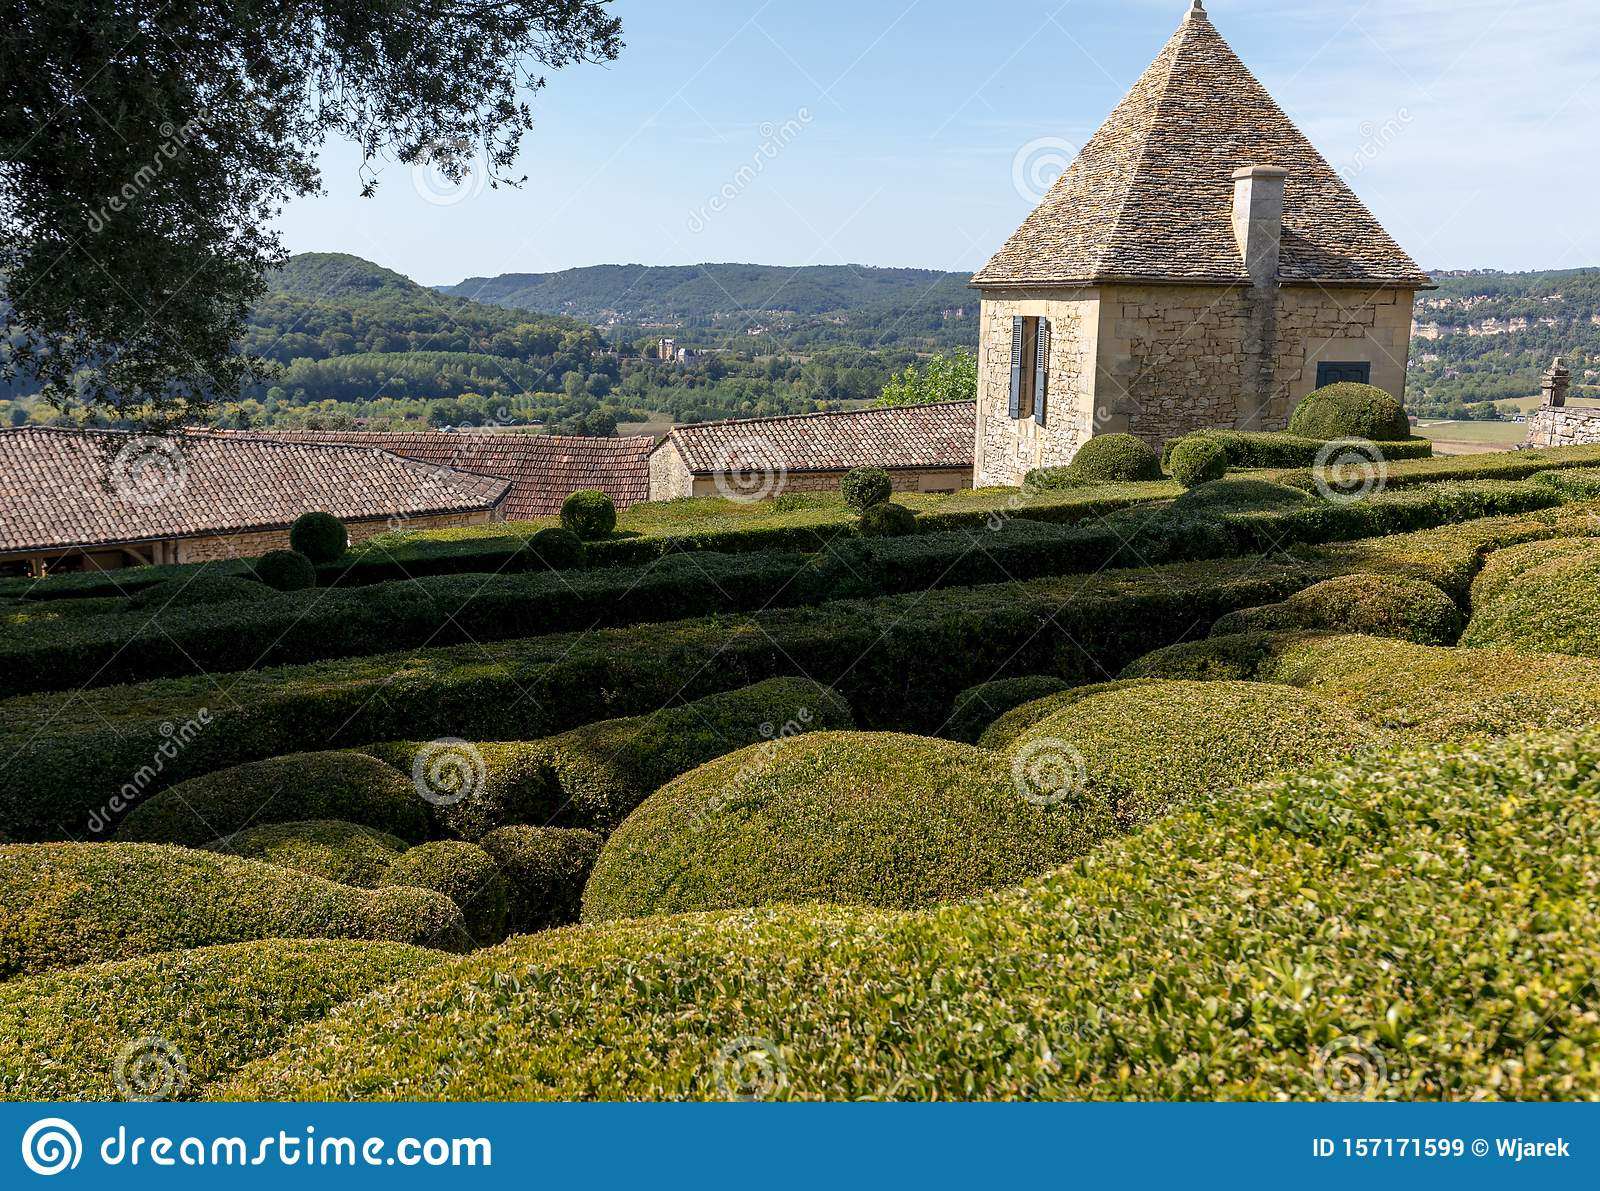 Topiary In The Gardens Of The Jardins De Marqueyssac In The intérieur Region De France 2018